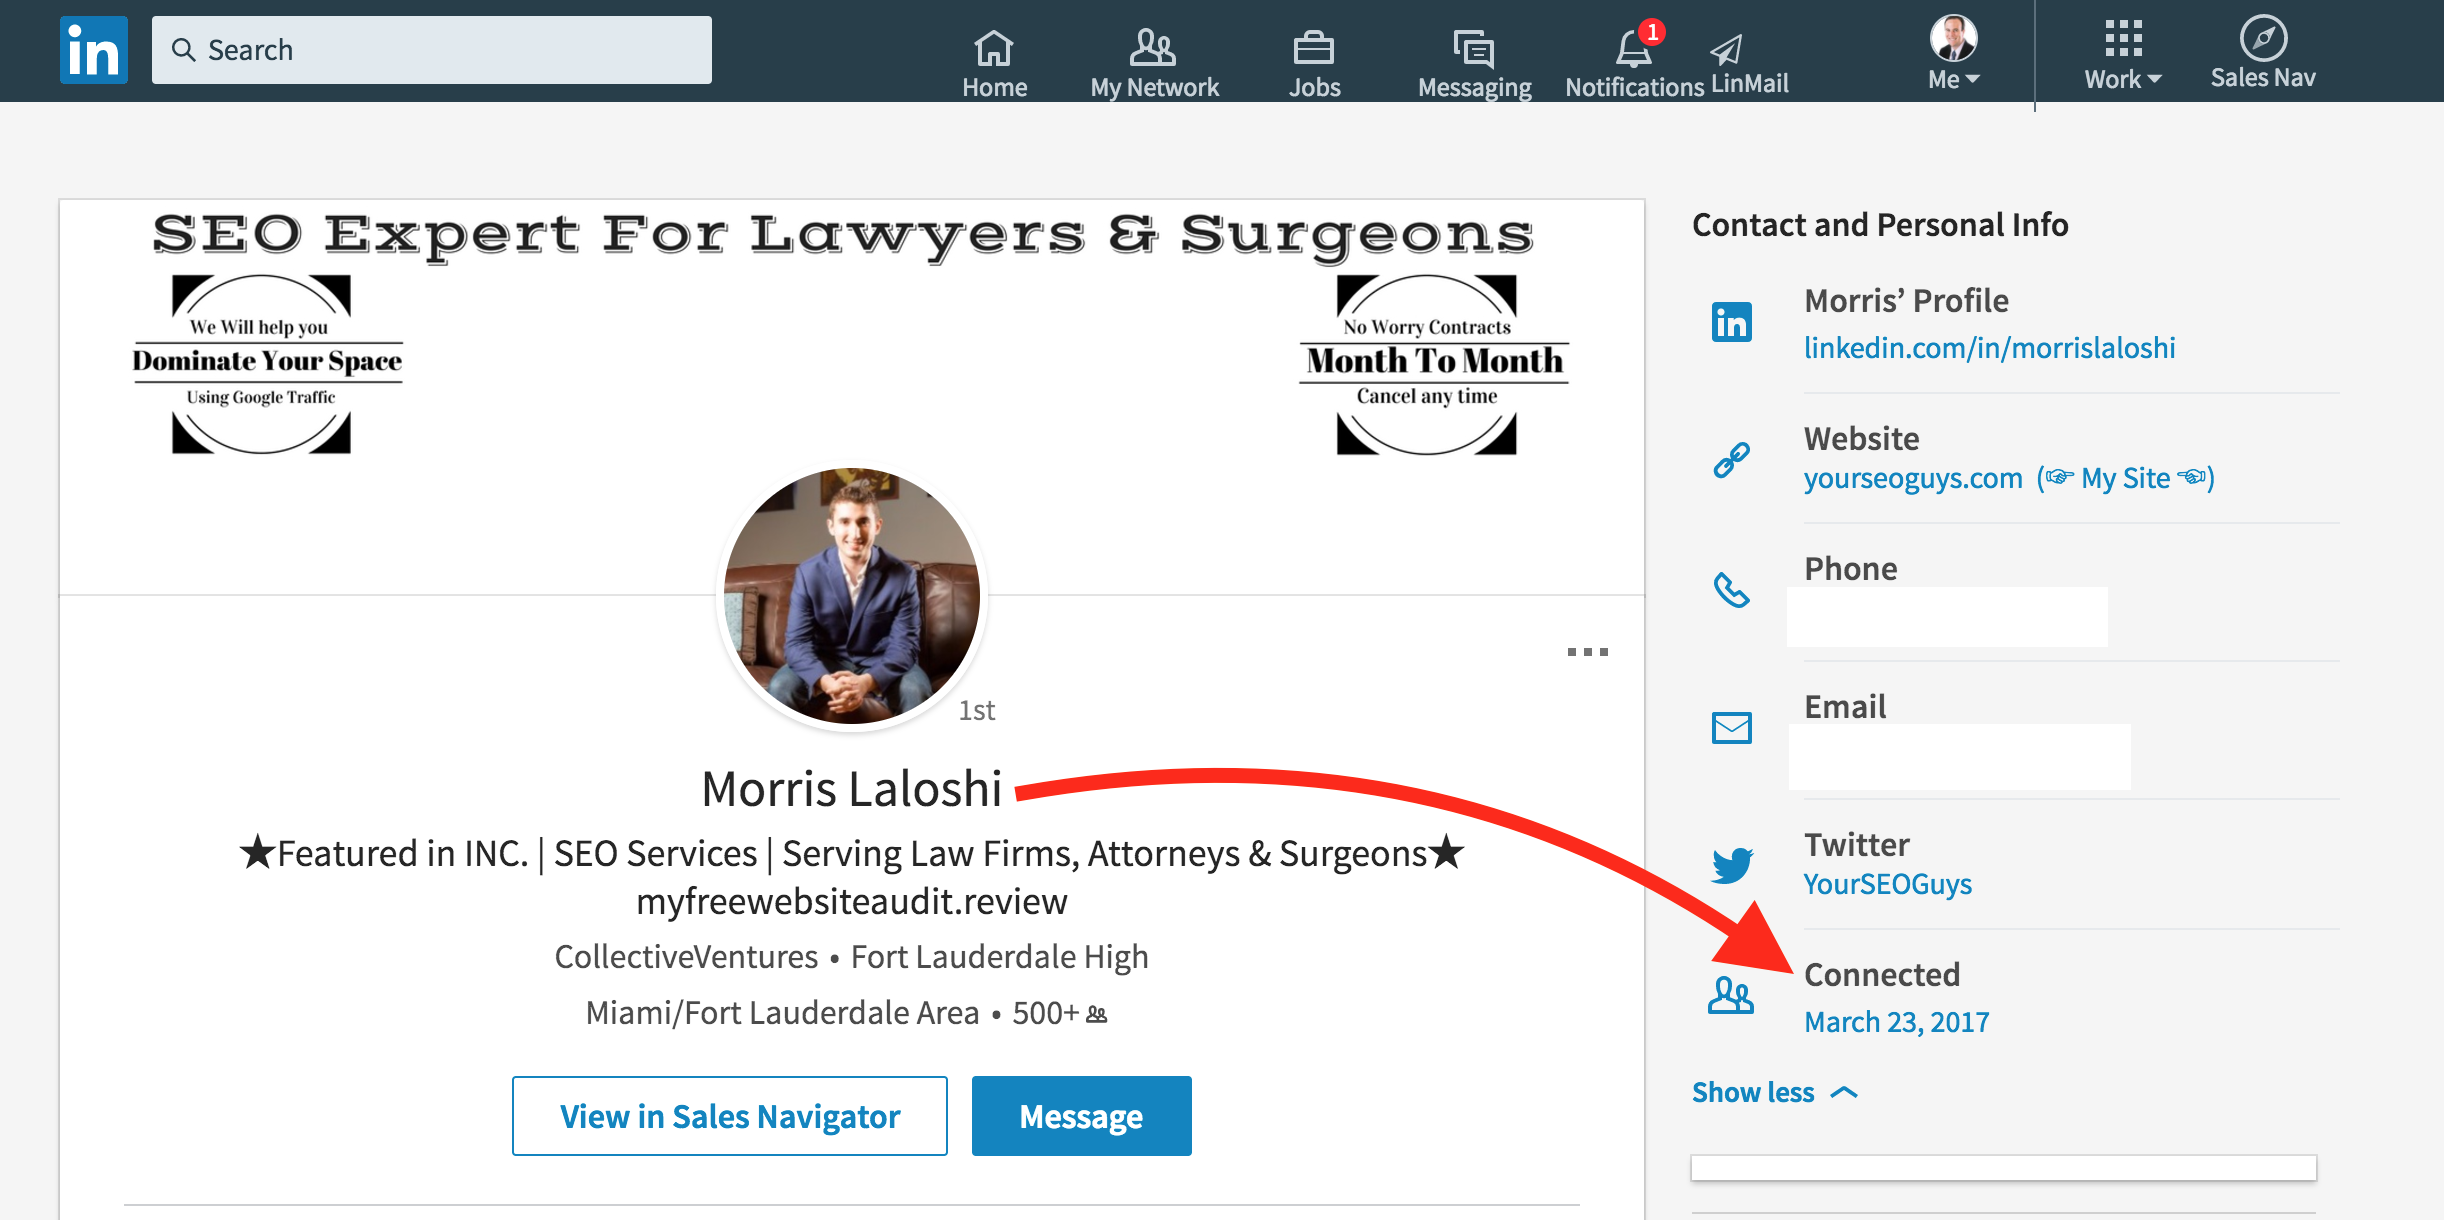 How To Keep Better Tabs on Your LinkedIn Connections